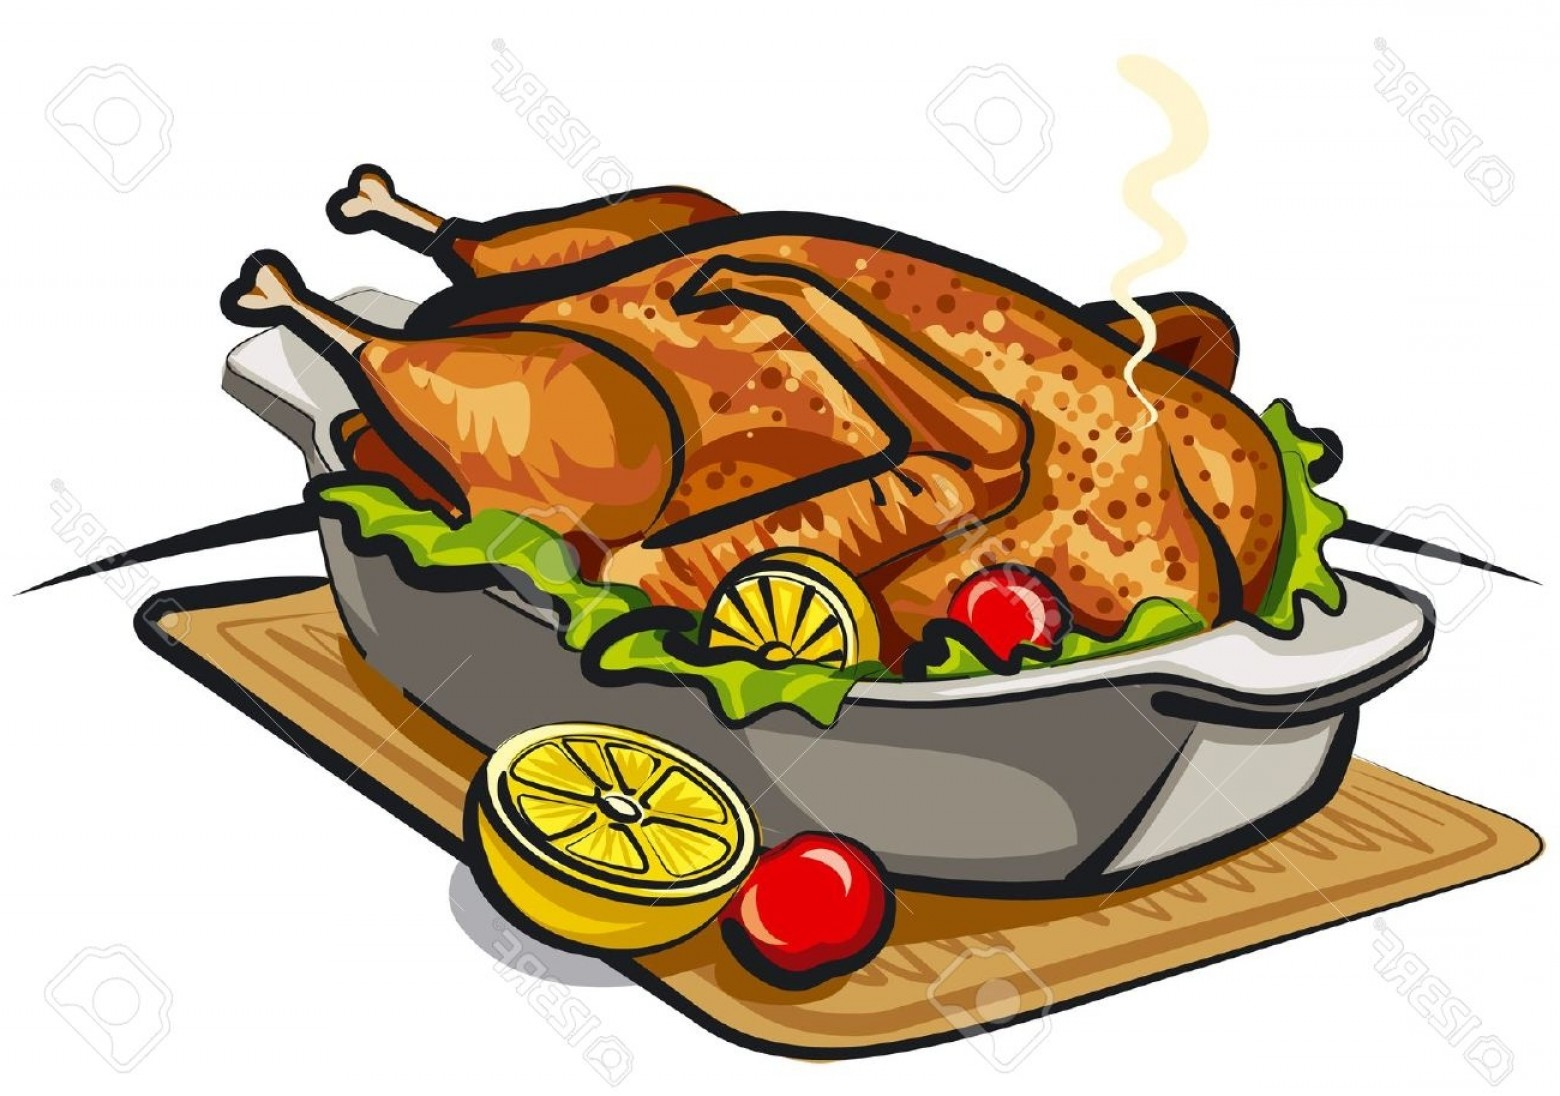 Cooked Chicken Clipart.